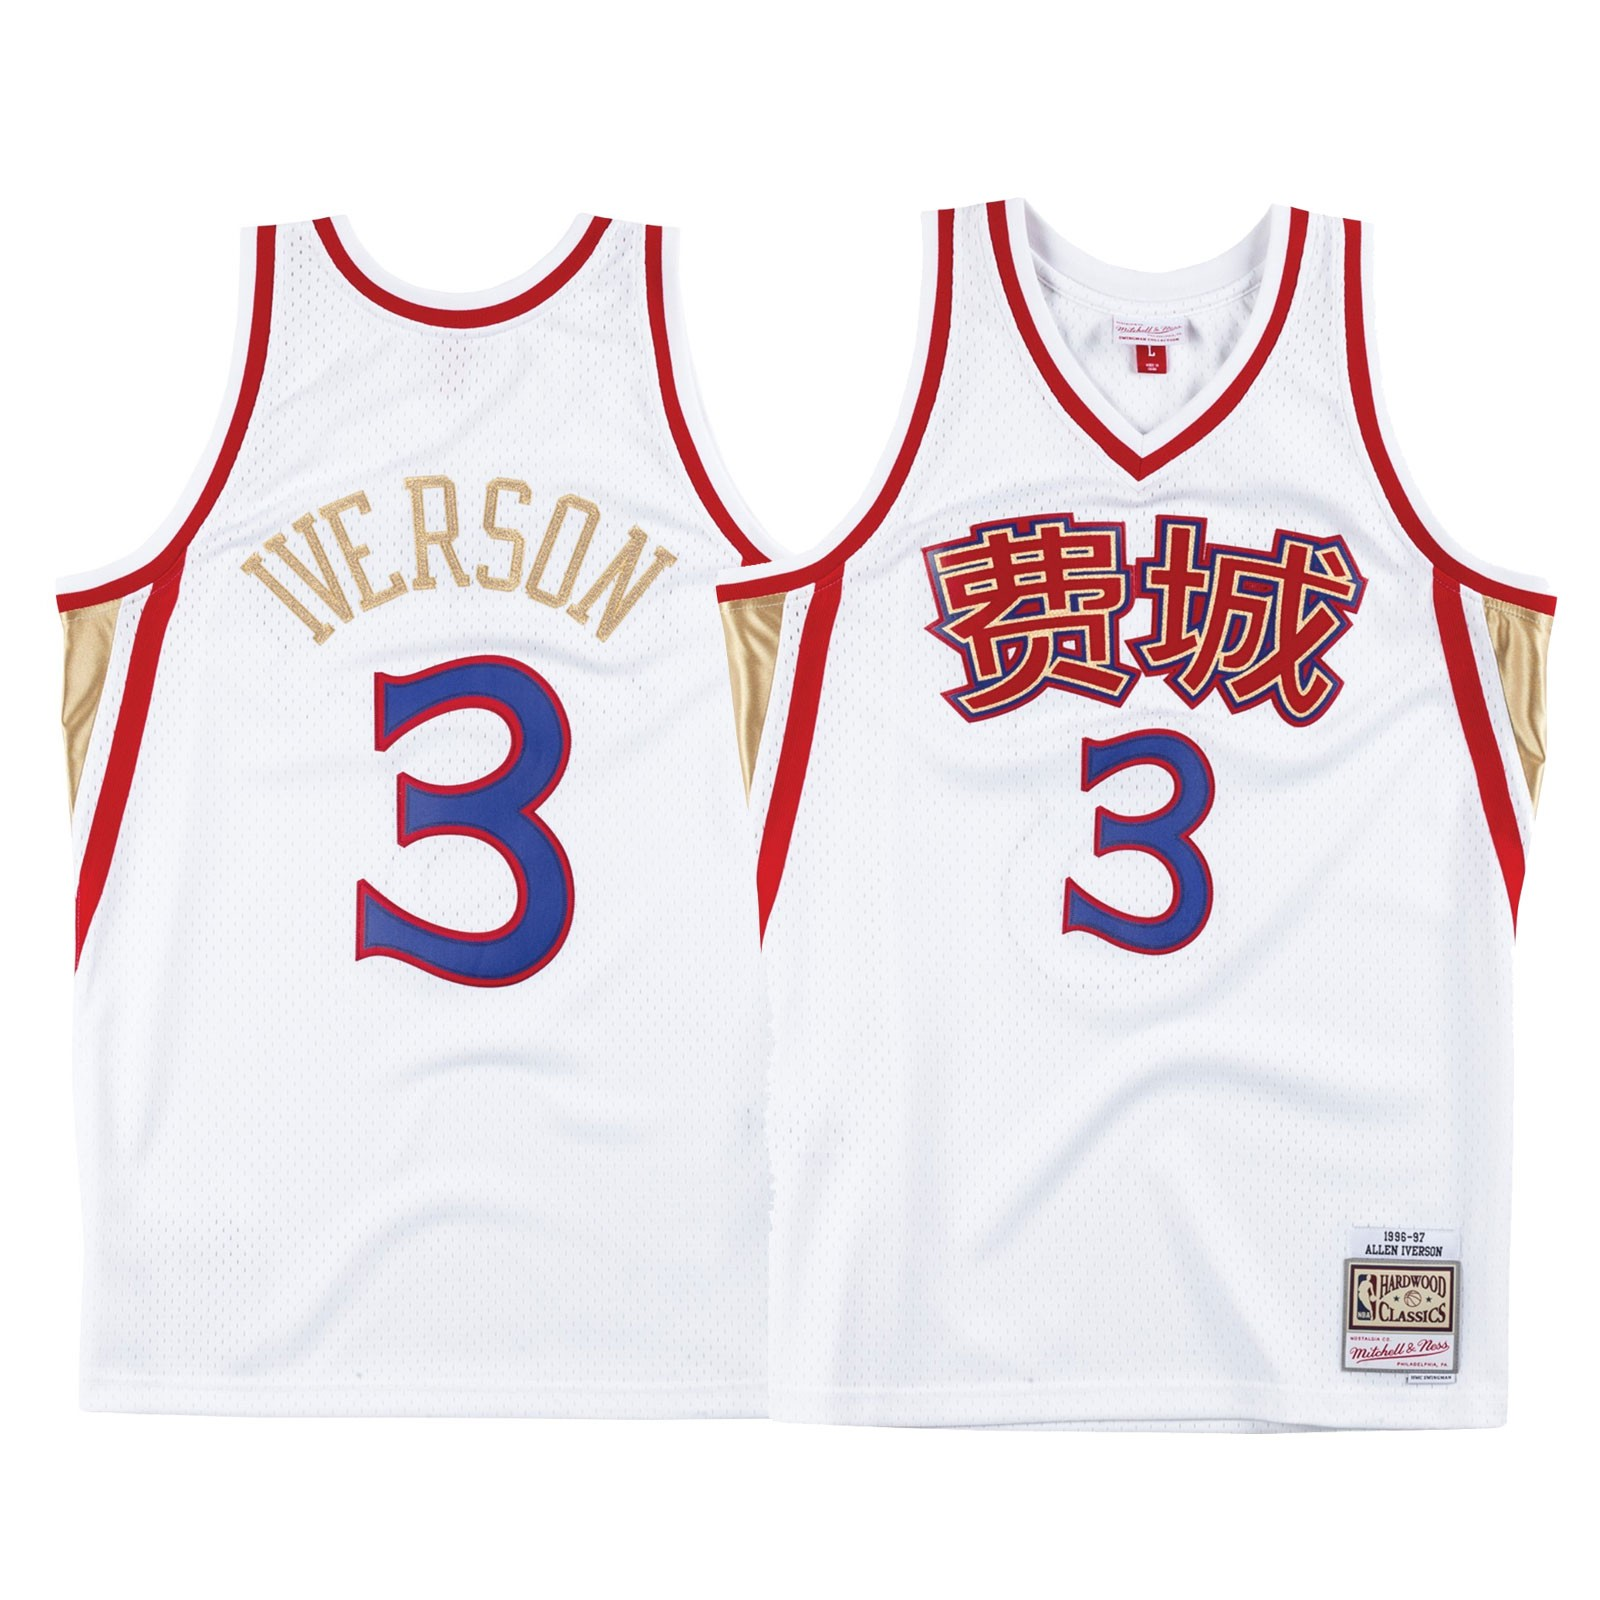 wholesale dealer f94d9 efecb Details about Allen Iverson Philadelphia 76ers Men's Mitchell & Ness 1996  CNY Swingman Jersey